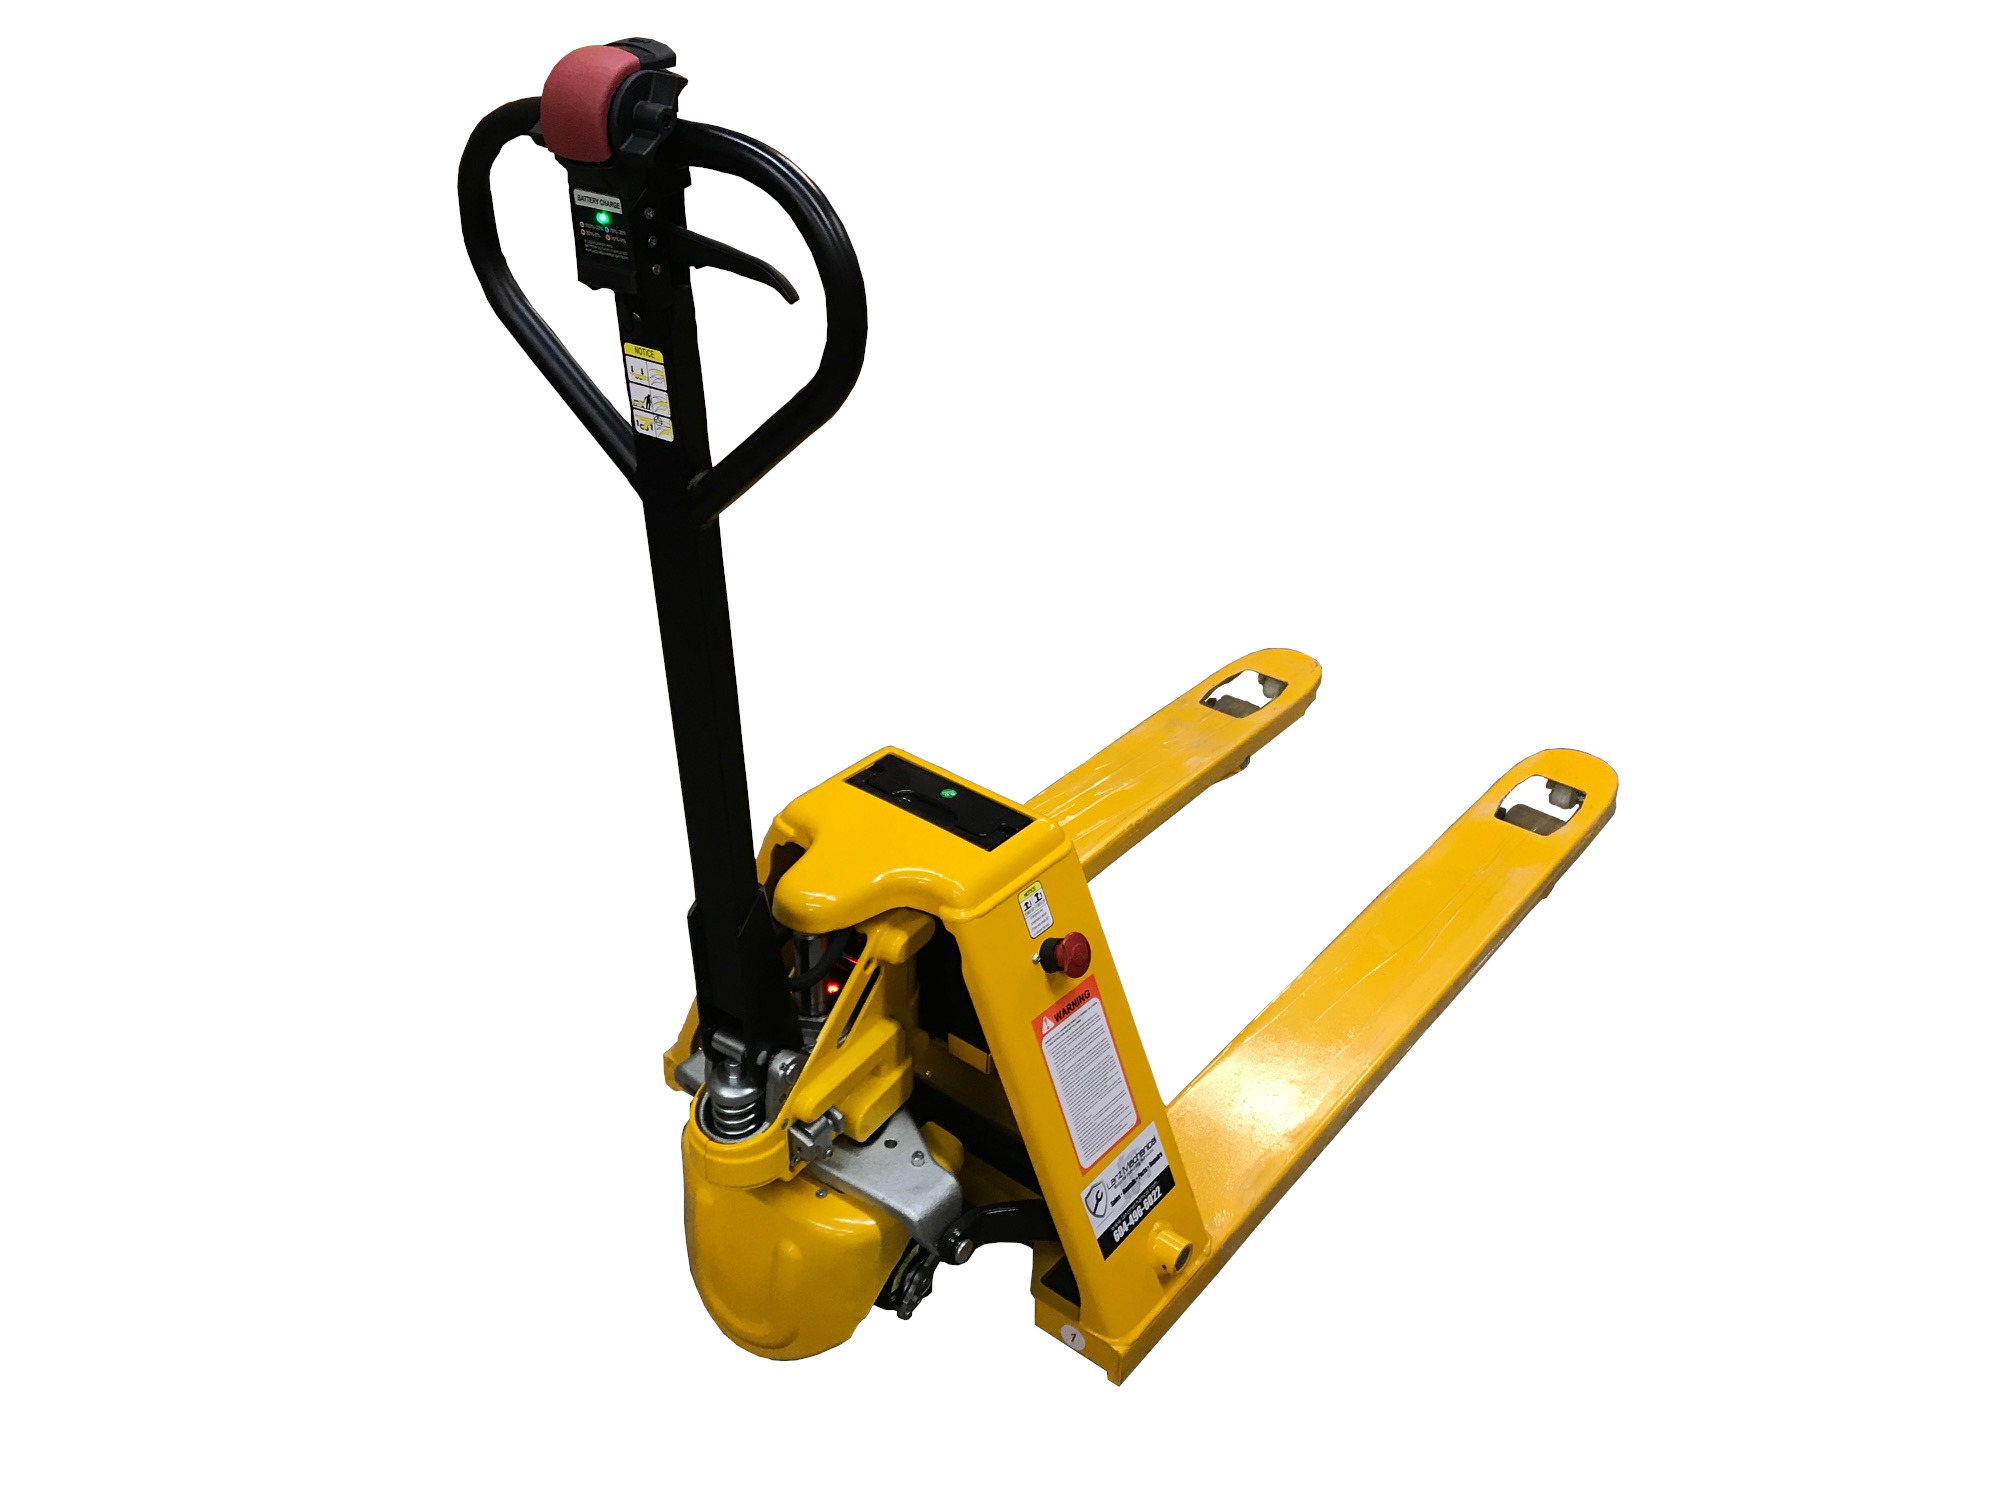 HYBRID FULL-ELECTRIC PALLET TRUCK (3,000 LB Capacity)